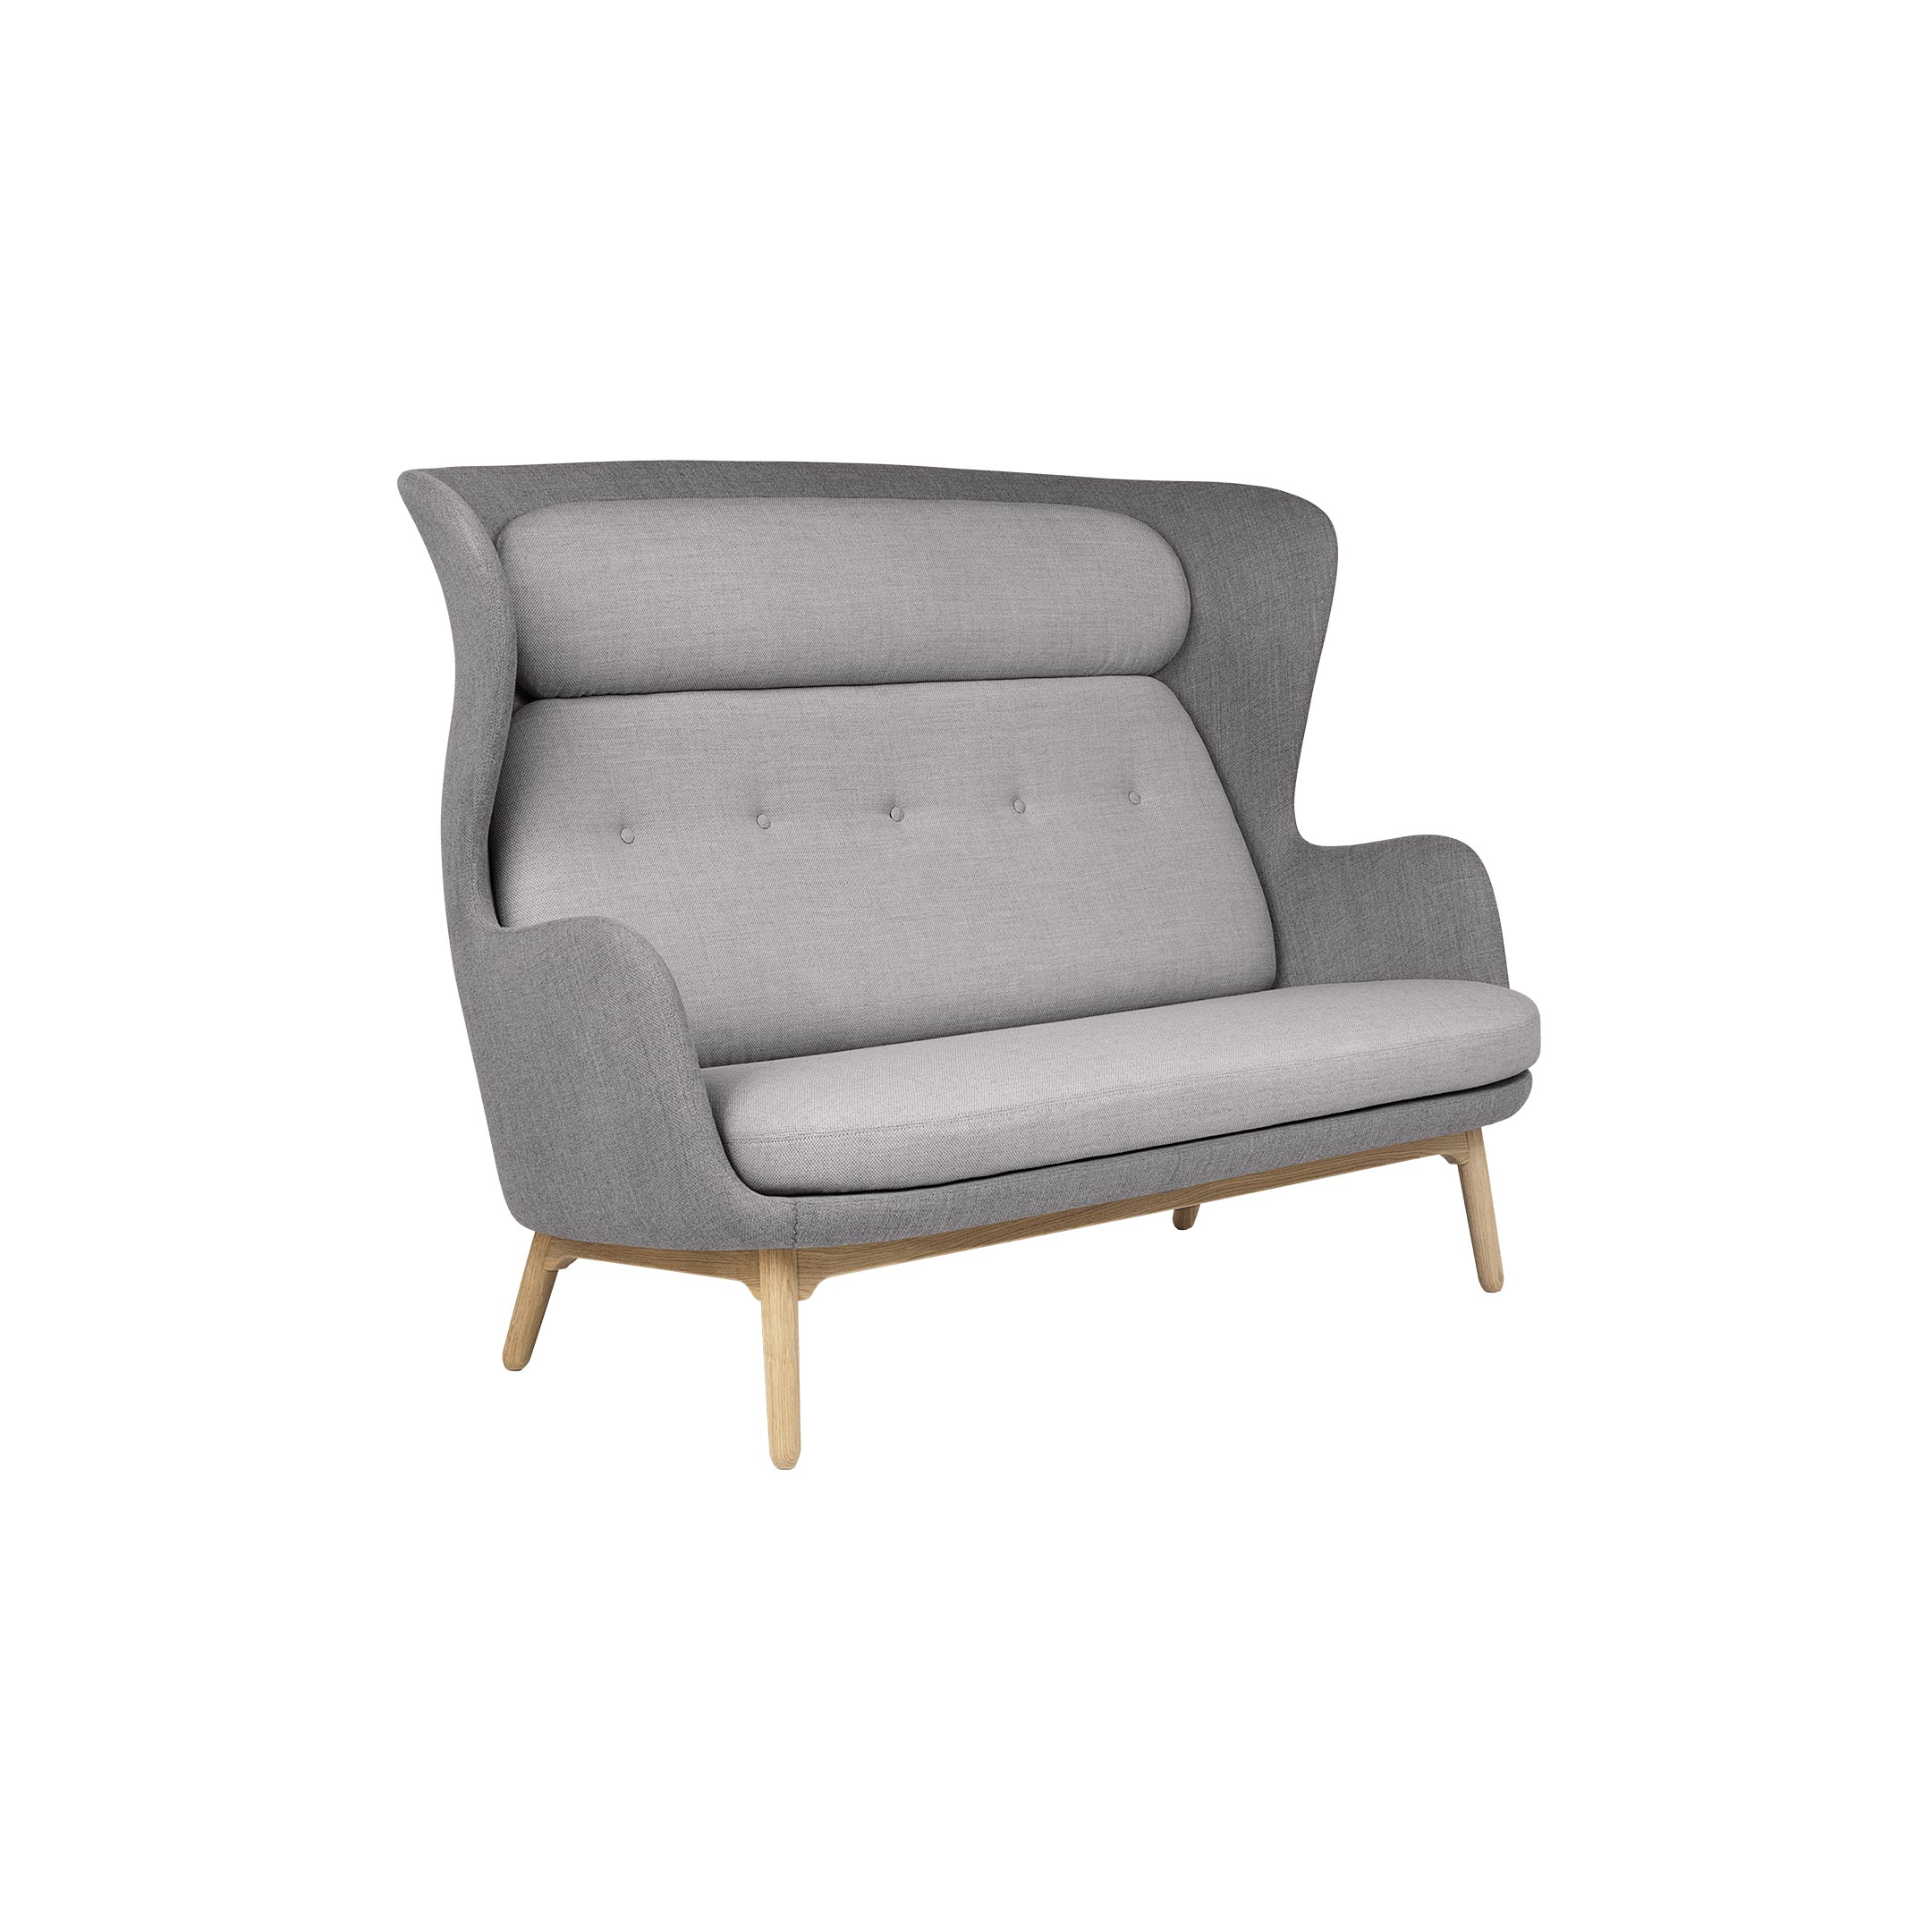 Ro Sofa - <p>Jaime Hayon's successful sofa Ro™ now fits two at a time. We introduce Ro as a 2-seater sofa - still accompanied by the curvy characteristics and playful, colourful expression found in Jaime Hayon's design philosophy. With the Ro™ Sofa, softness is expressed as a social setting for two - or for four when placed one in front of another - offering a unique feeling of privacy but with plenty of space at the same time. The Ro™ Sofa is perfect for any open office environment or other spaces that have the need for a breakout area or a room division. The Ro chair's distinct, sculptural shape has been interpreted in the Ro™ Sofa version and the two now make up a small unified collection. Despite its high back, the Ro™ Sofa is warm and welcoming and has a cosy appearance, whilst at the same time it offers the possibility of an enclosing, intimate space built for privacy. The Ro™ Sofa comes fully upholstered in in a wide range of fabrics. Single fabric or a mix of 2 fabrics; one fabric for the shell and one for the cushions. The base consists of 4 legs in brushed aluminium and it is also available with a wooden base in solid oak with a clear lacquer finish. A range of materials, colours and finishes are available in a number of combinations. Prices may vary. Please enquire for full details.</p>  | Matter of Stuff